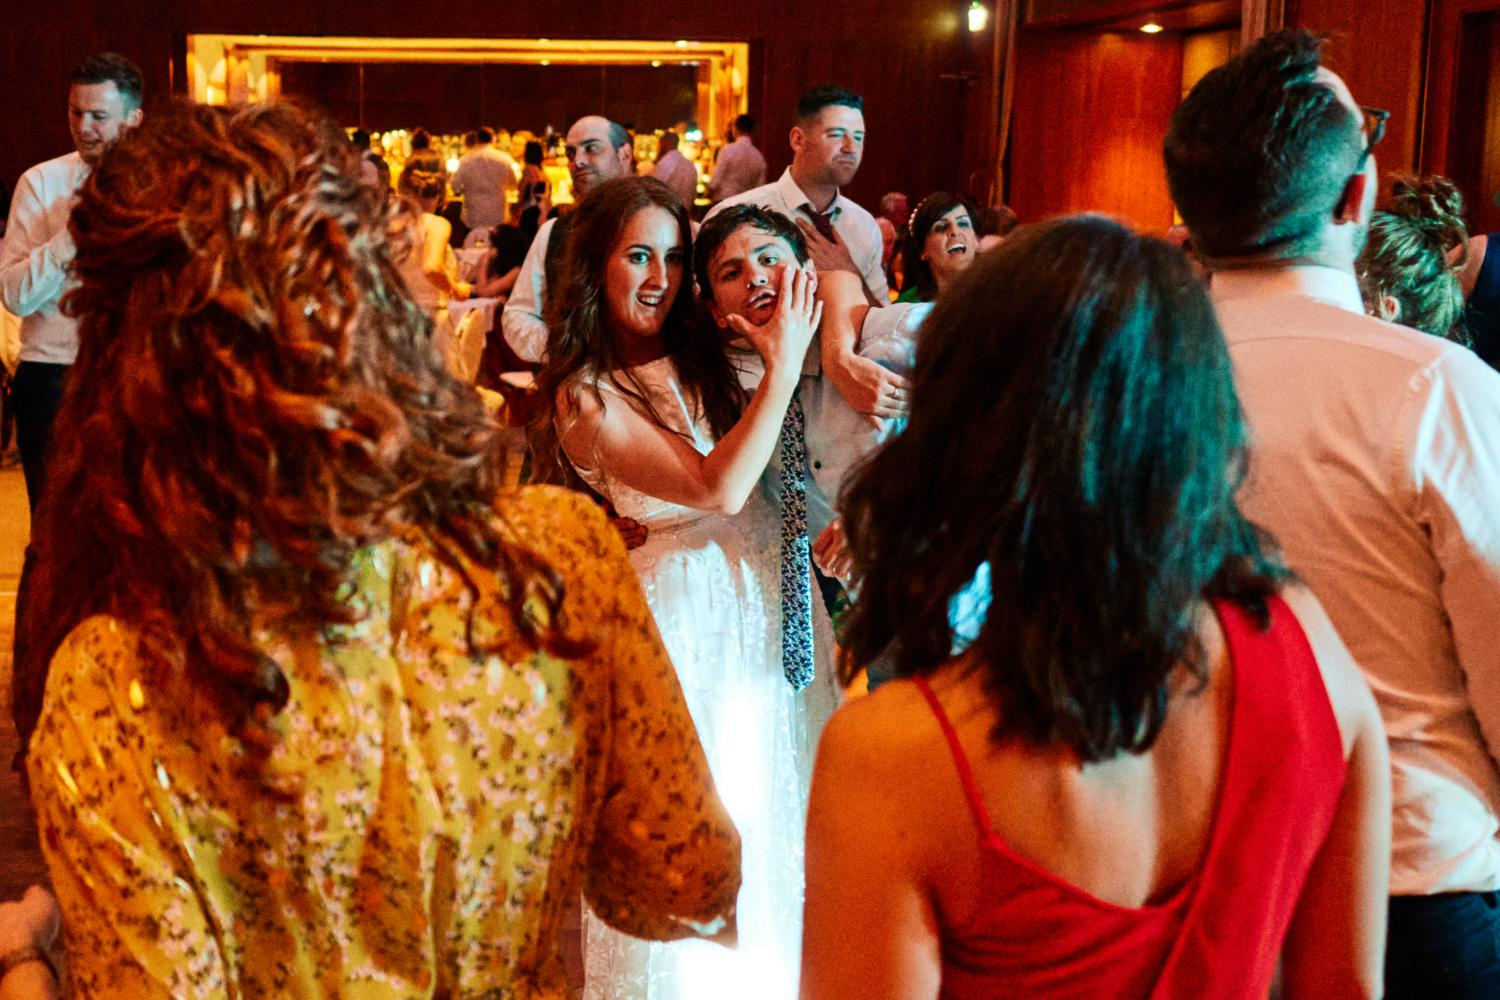 Bride squeezes friend's face on dance floor